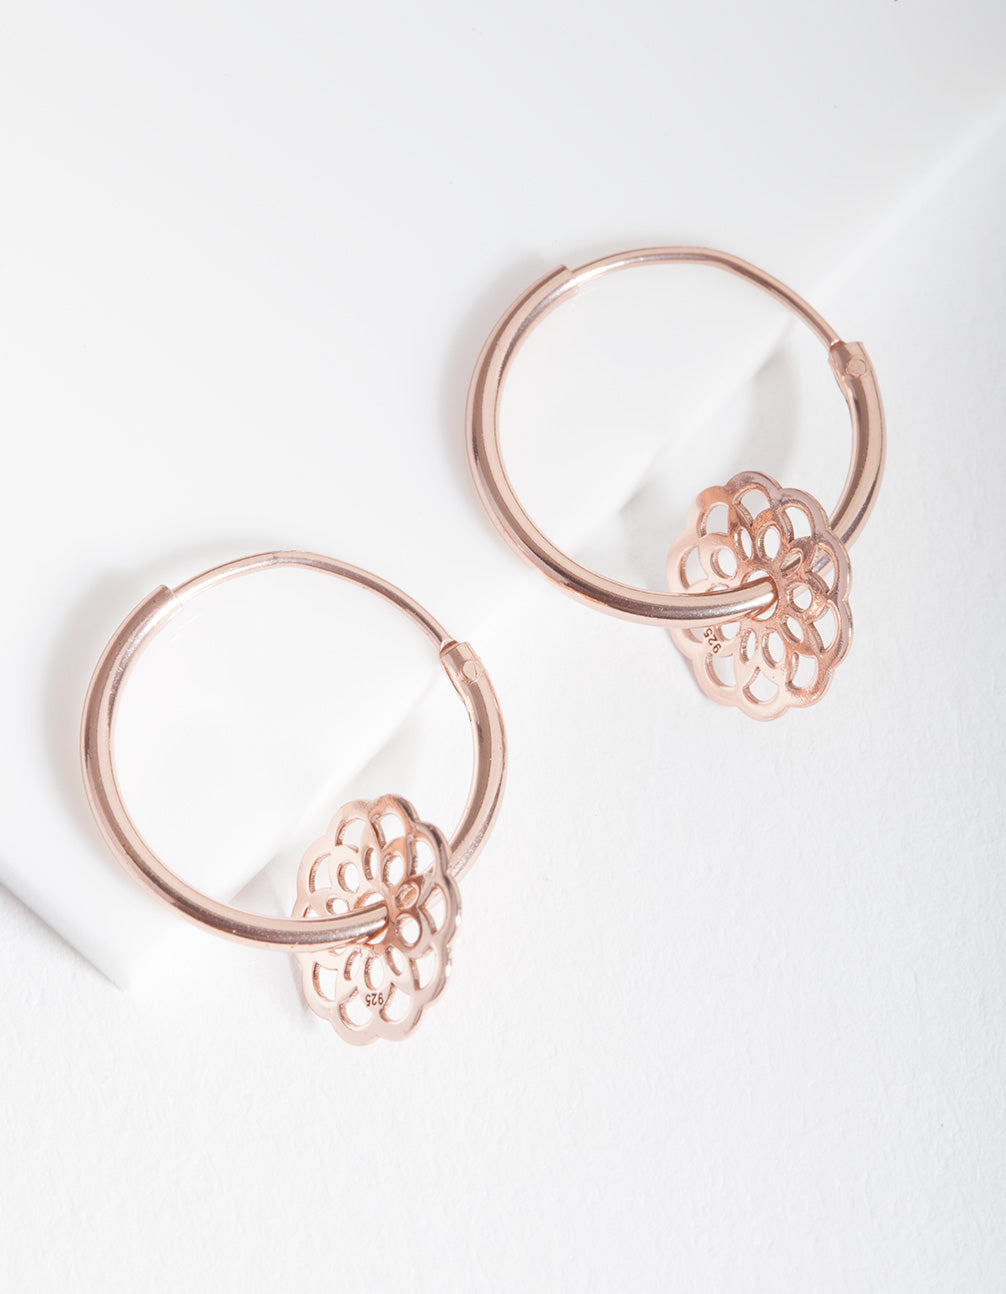 Rose Gold Plated Sterling Silver Filigree Flower Charm Hoop Earrings